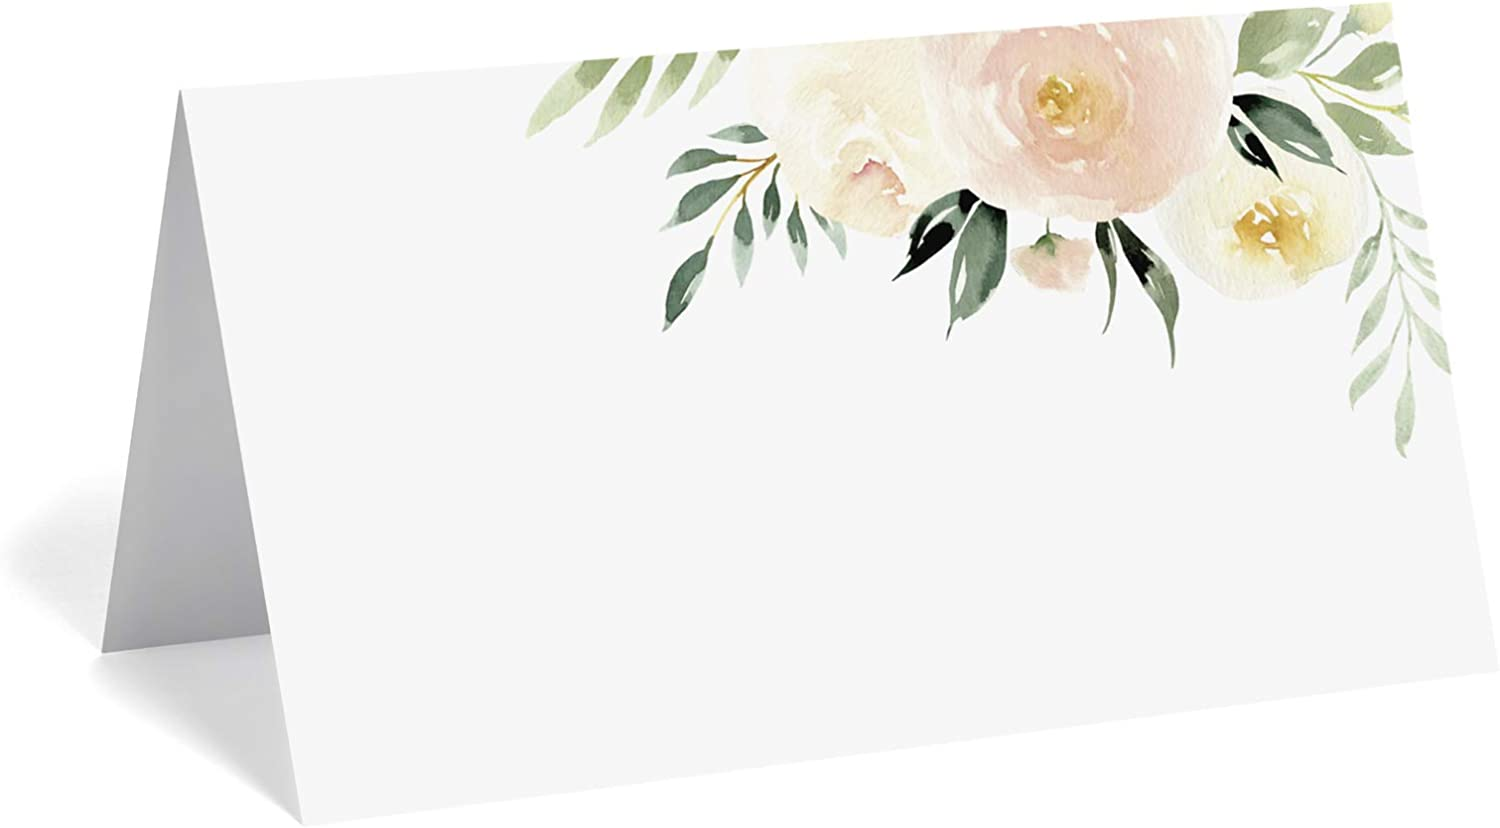 Bliss Collections Floral Place Cards for Wedding or Party, Seating Place Cards for Tables, Scored for Easy Folding, Blush Flower Design 50 Pack, 2 x 3.5 Inches